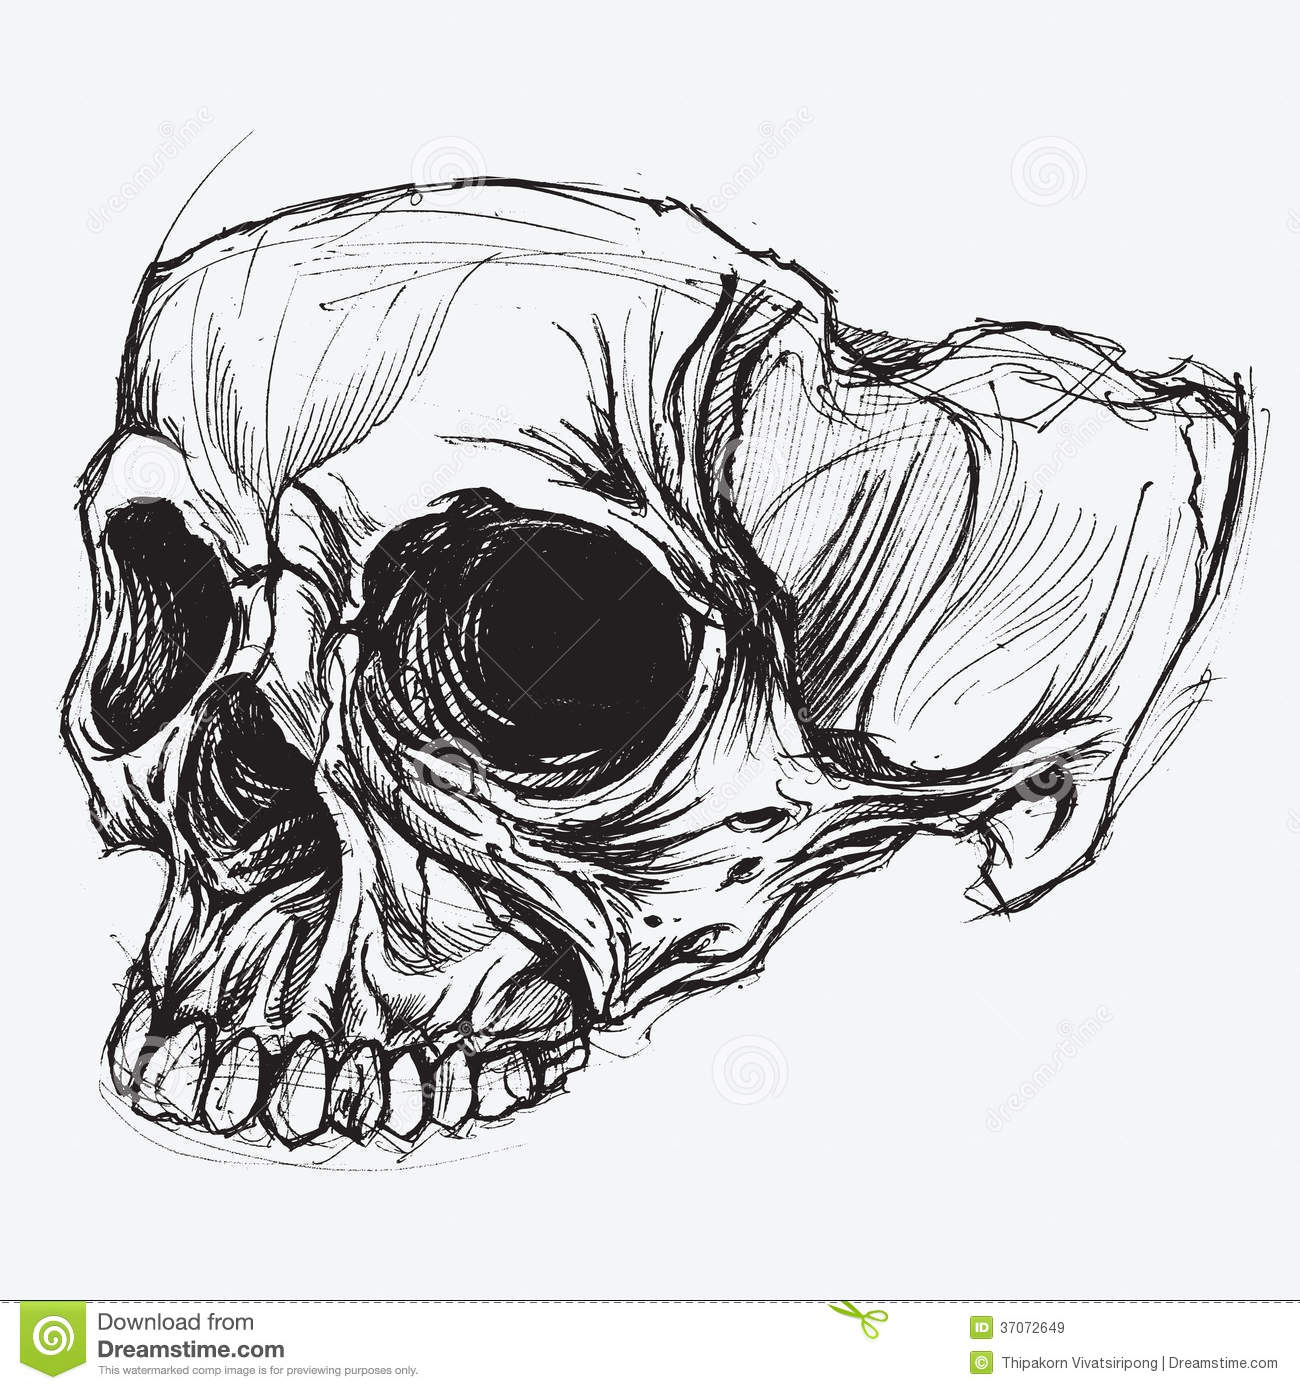 Drawing Lines Using Svg : Skull drawing royalty free stock images image